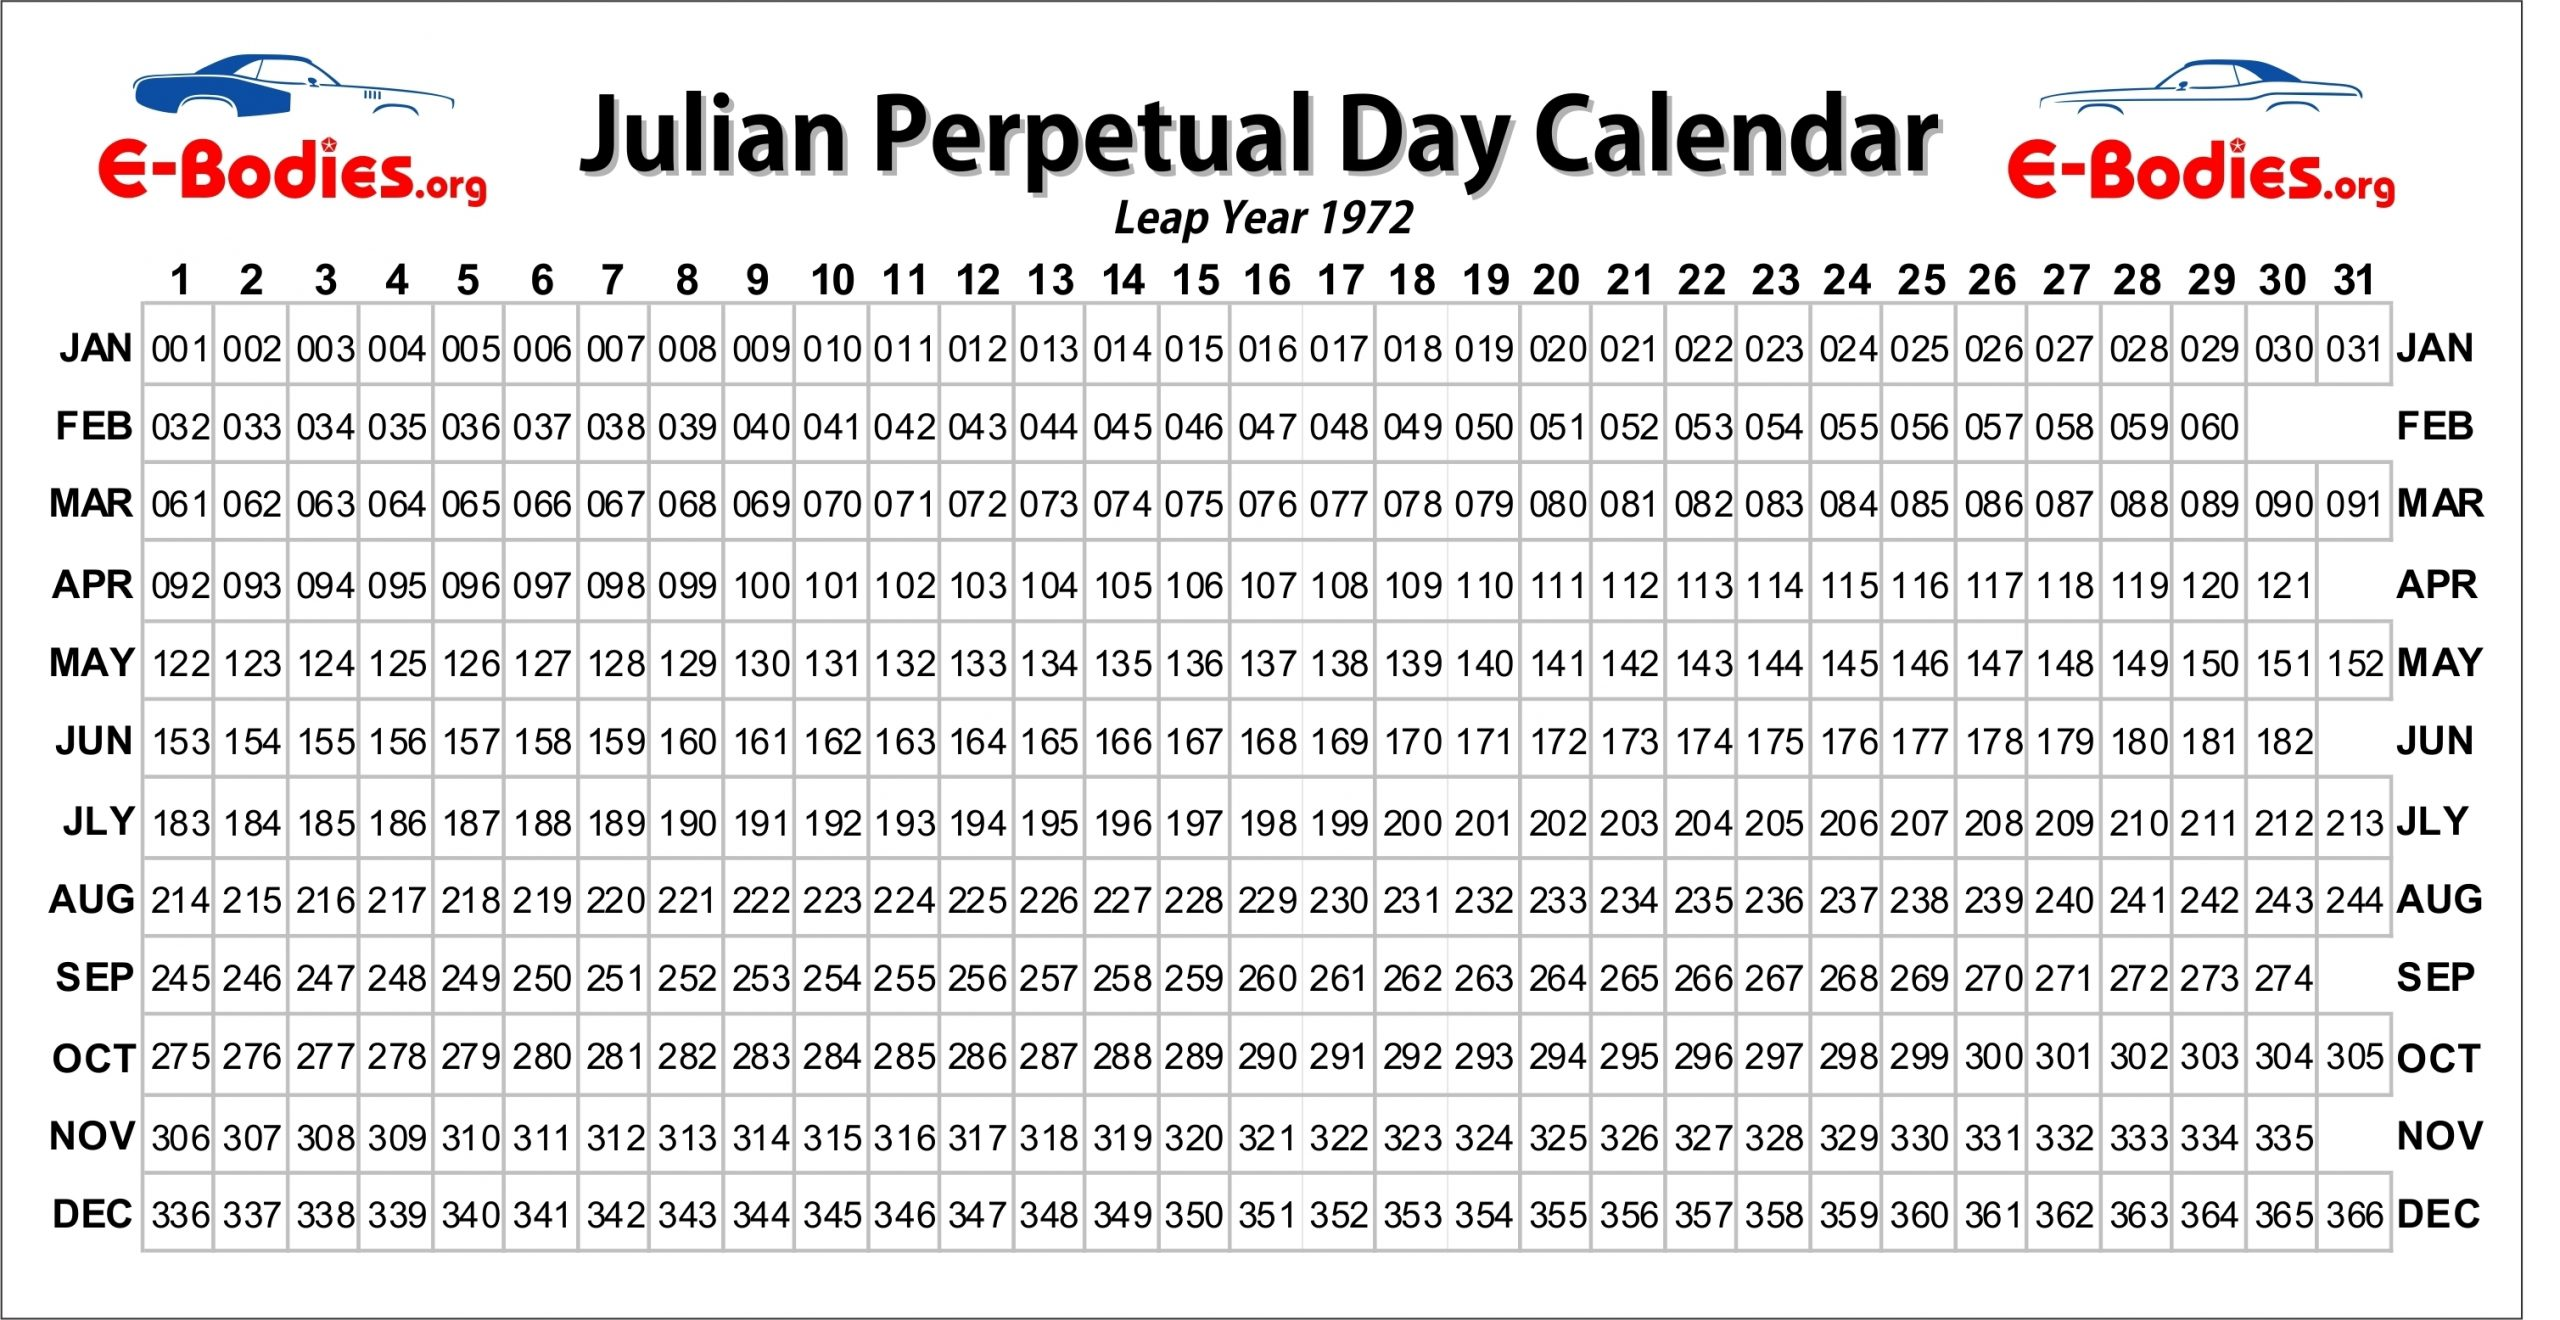 Mopar Julian Perpetual Day Calendar Leap Year – E-Bodies